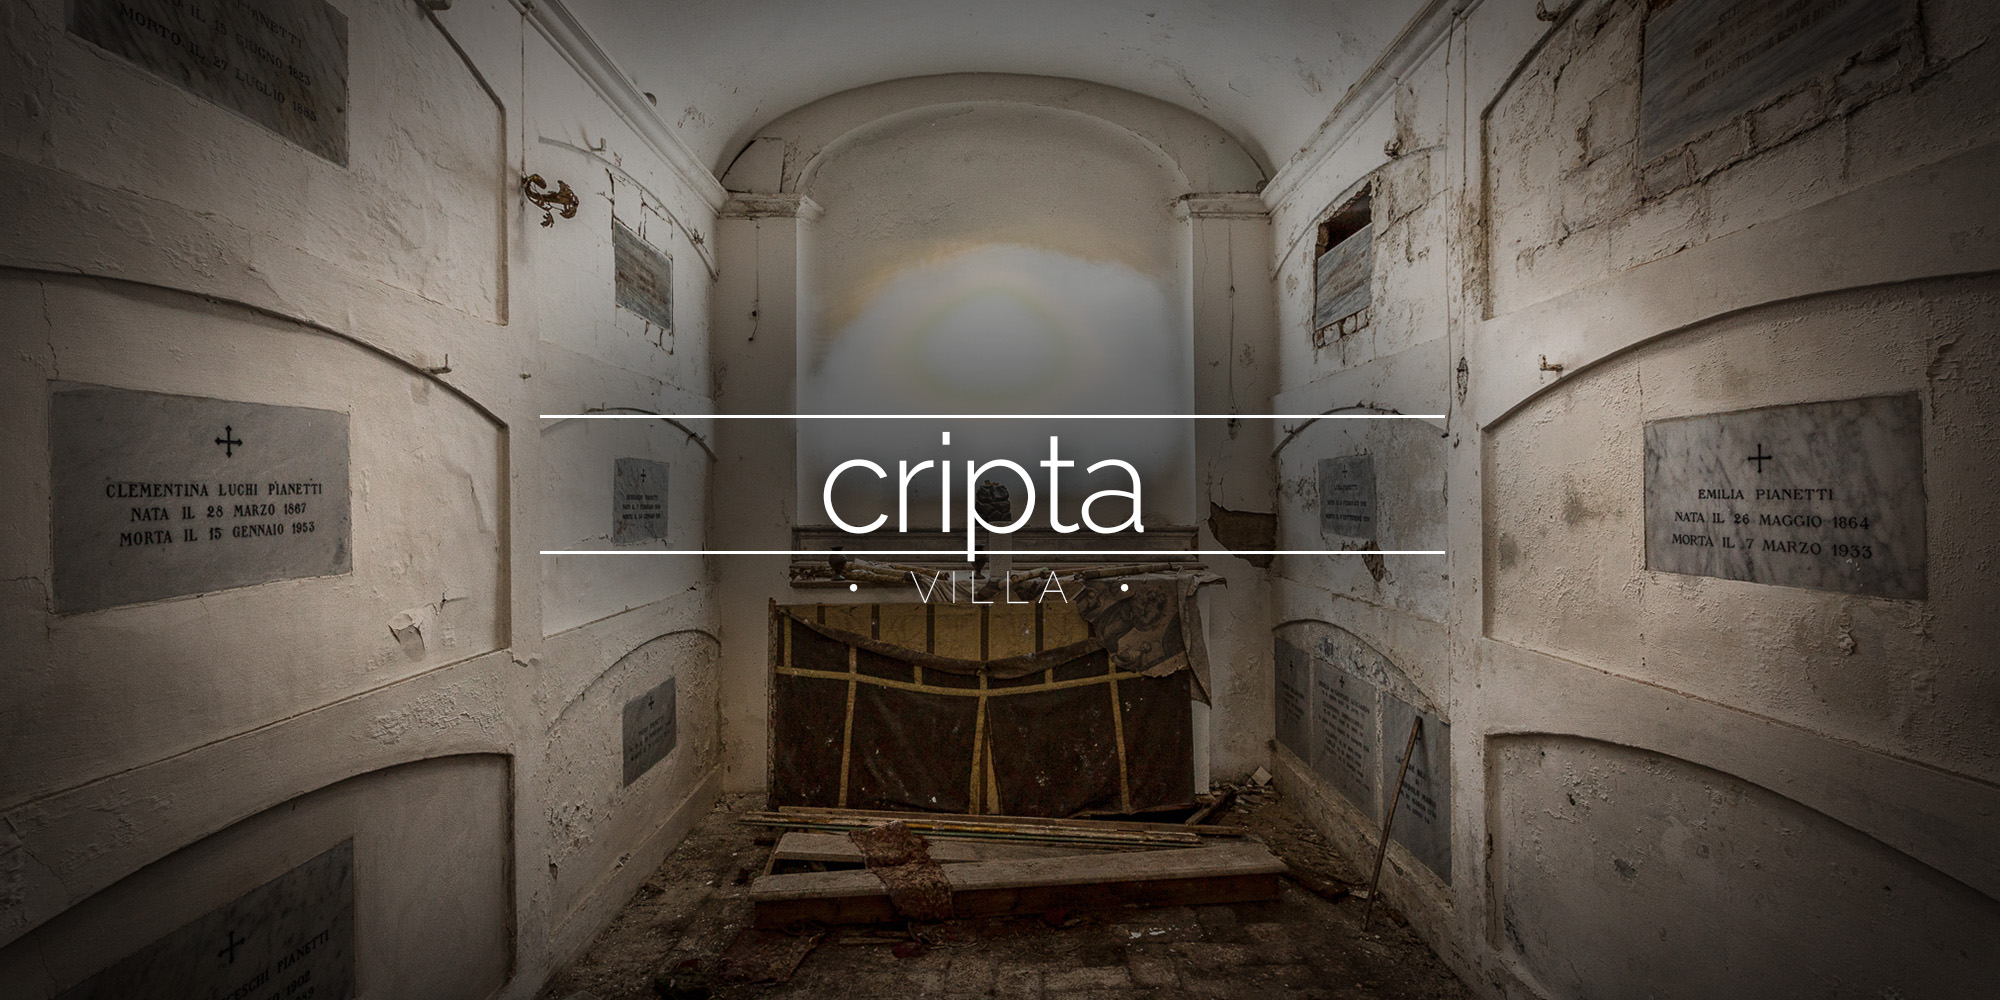 Villa Cripta, Italy - House with a crypt